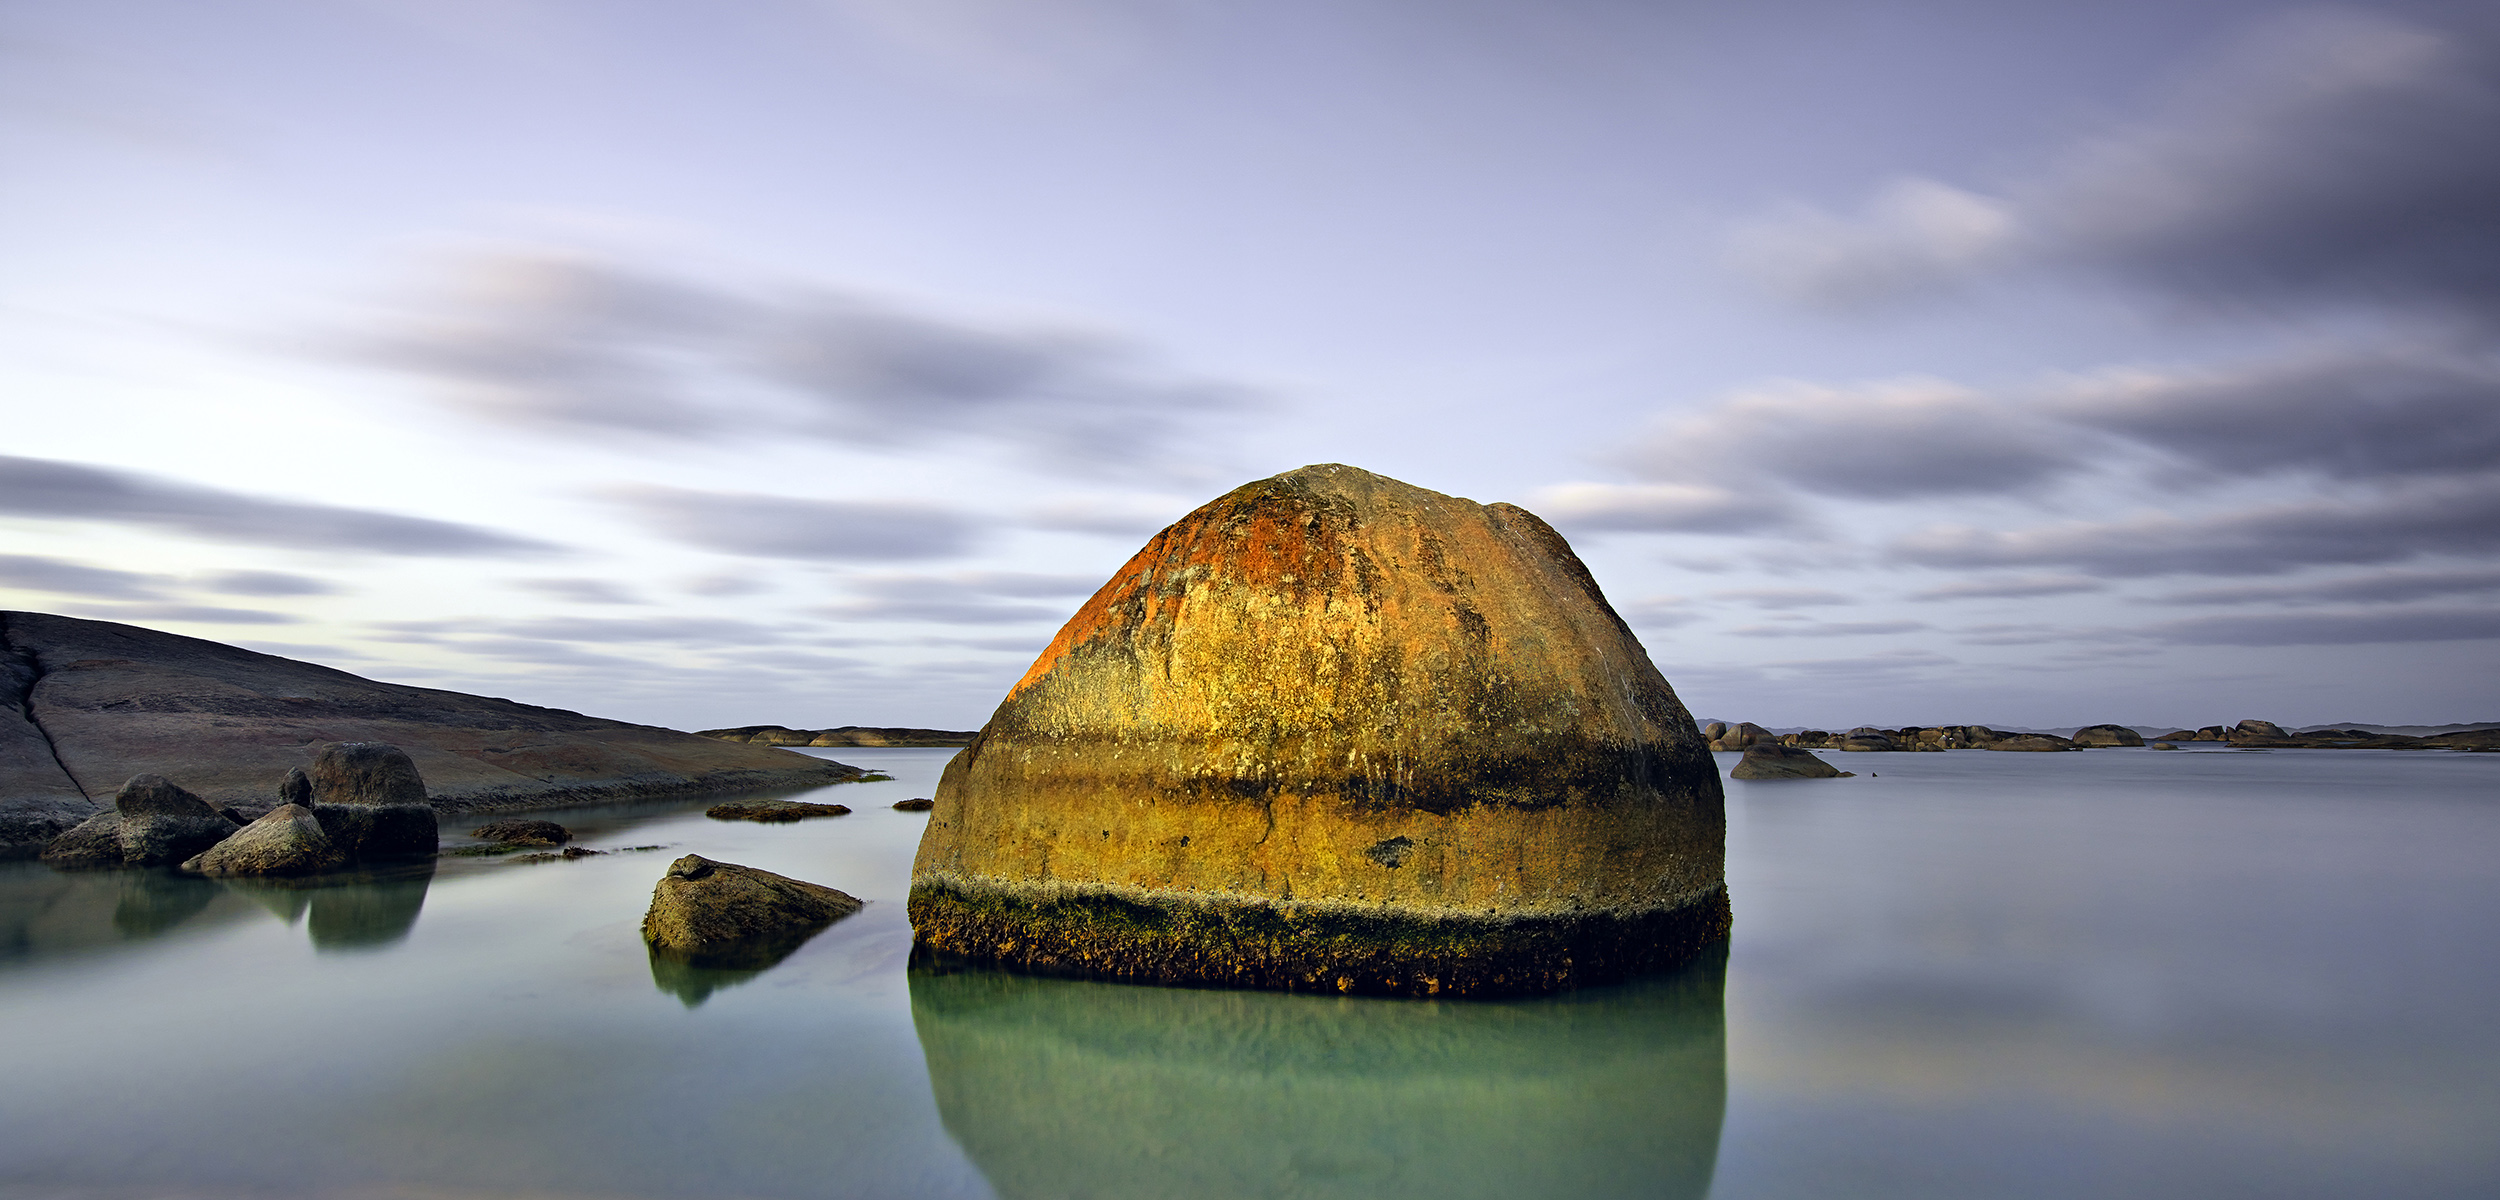 A rounded rock formation in the sea